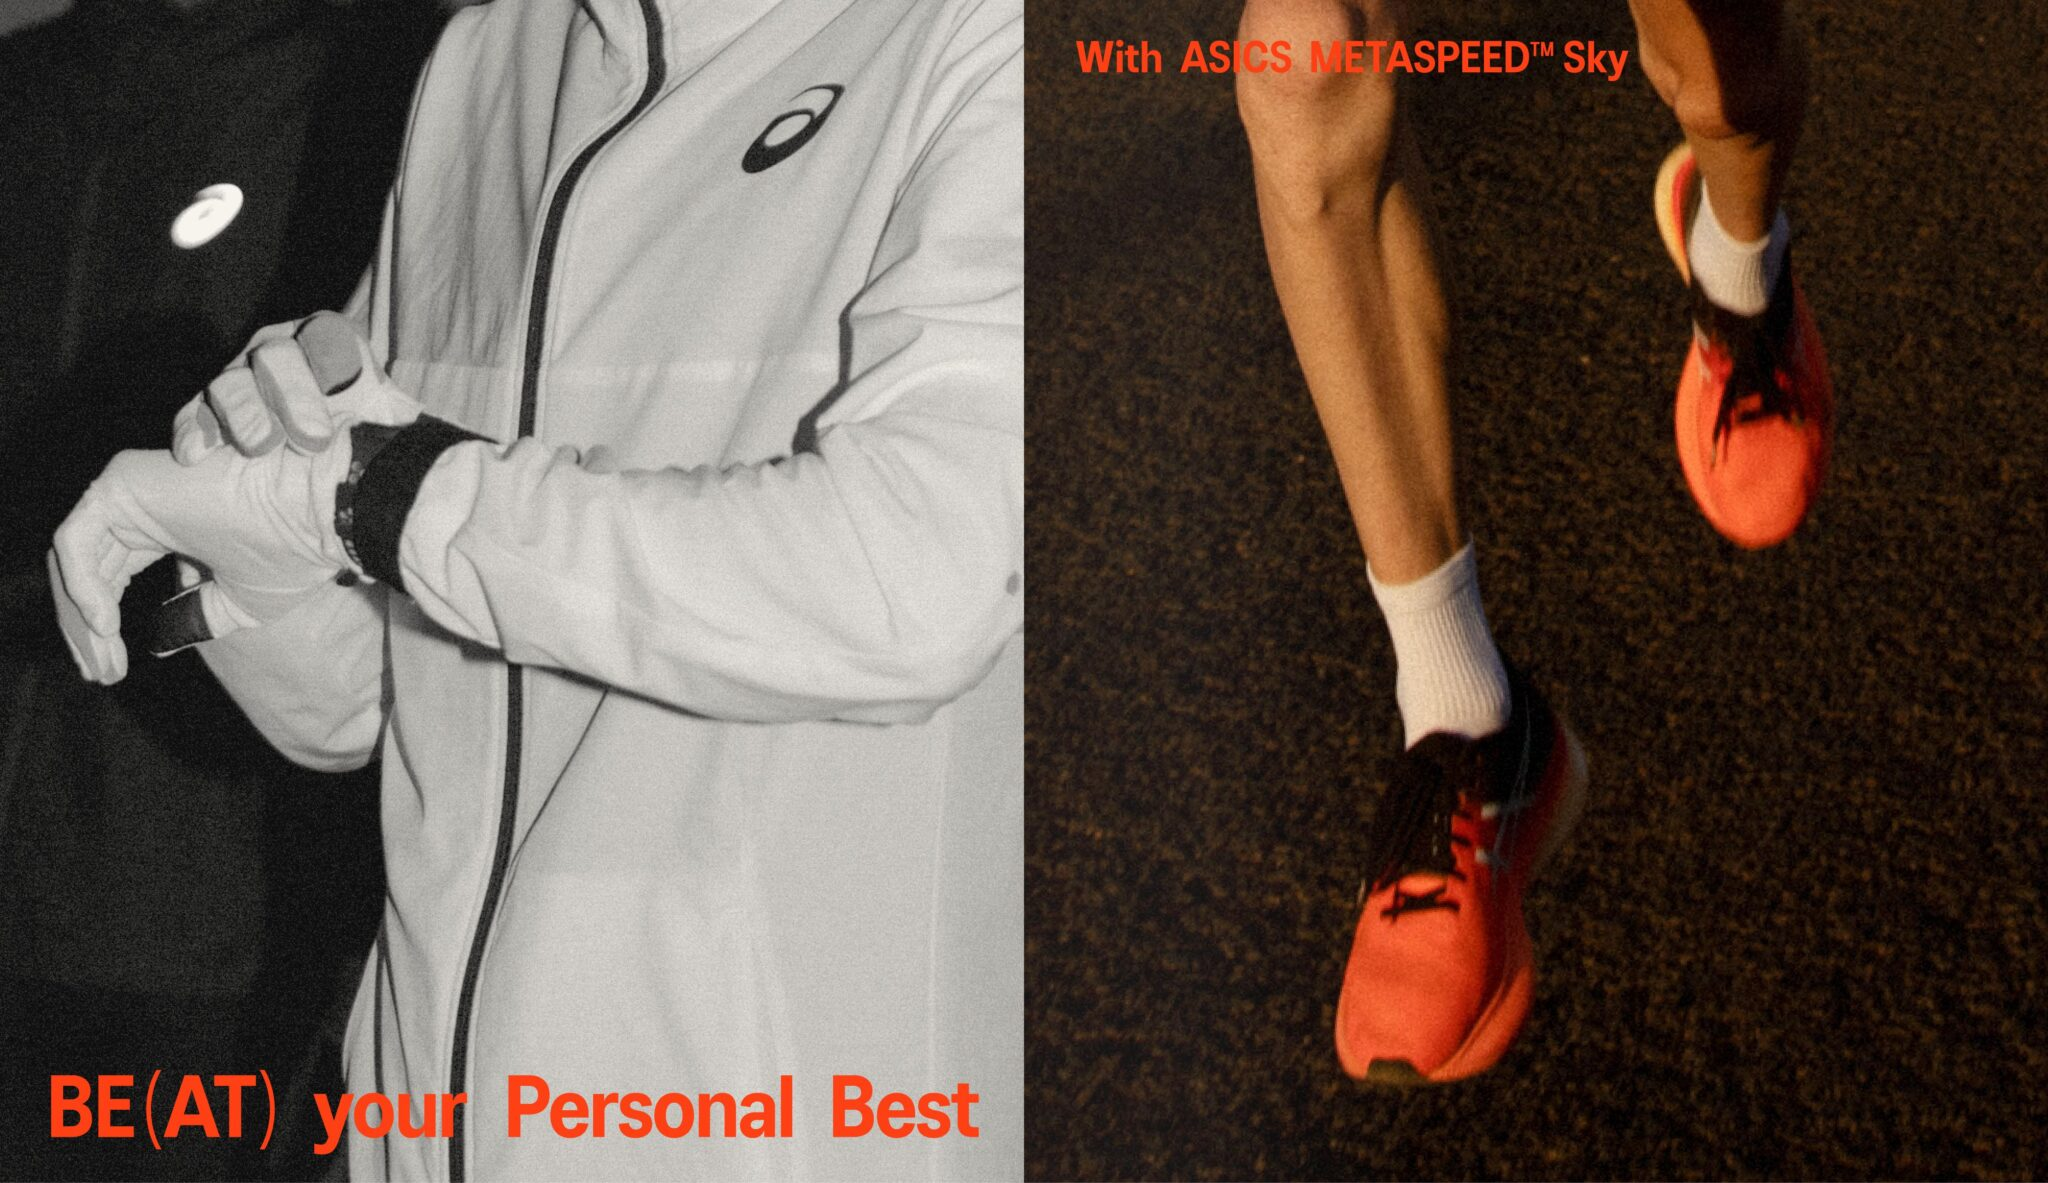 asics be at your personal best running 1